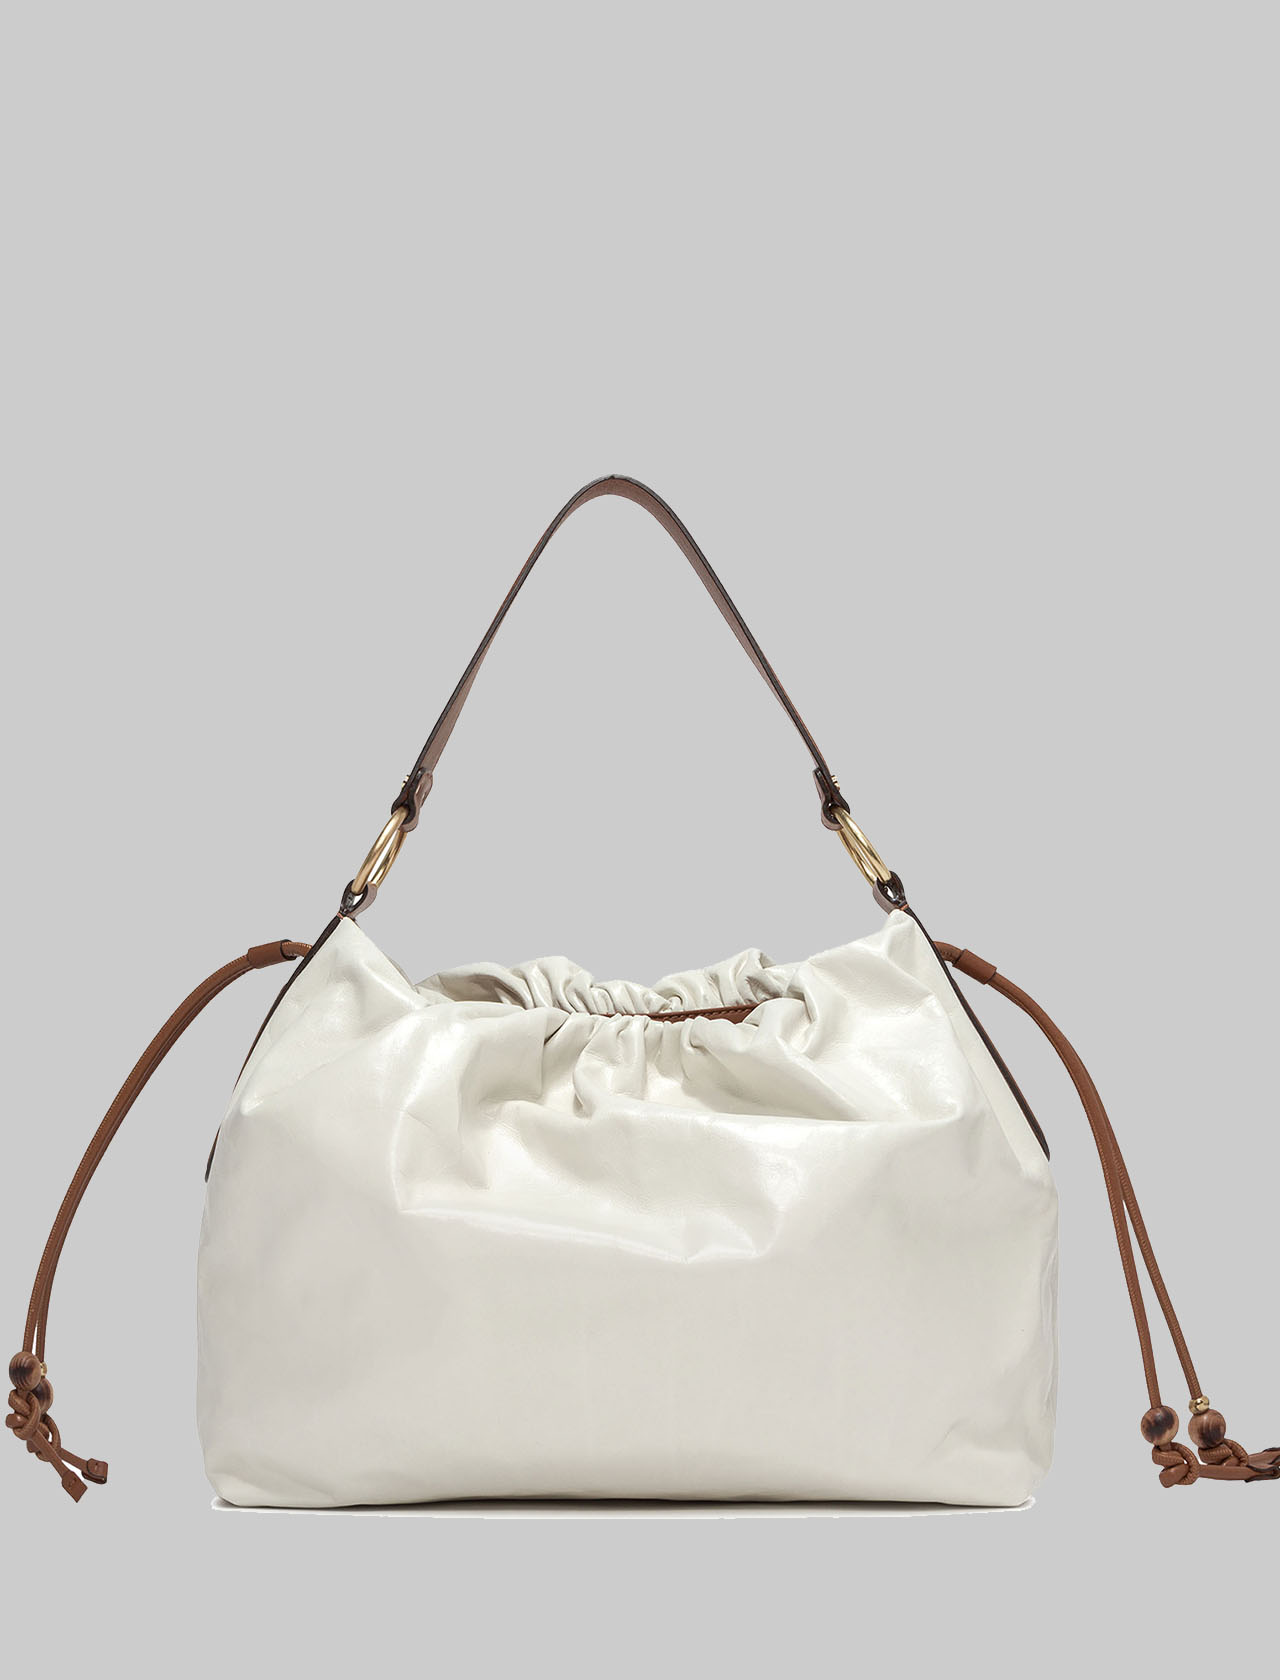 Shoulder Bags Woman Maxi Peonia in Cream Leather with Fixed Handles in Tan Leather Gianni Chiarini | Bags and backpacks | BS84213890